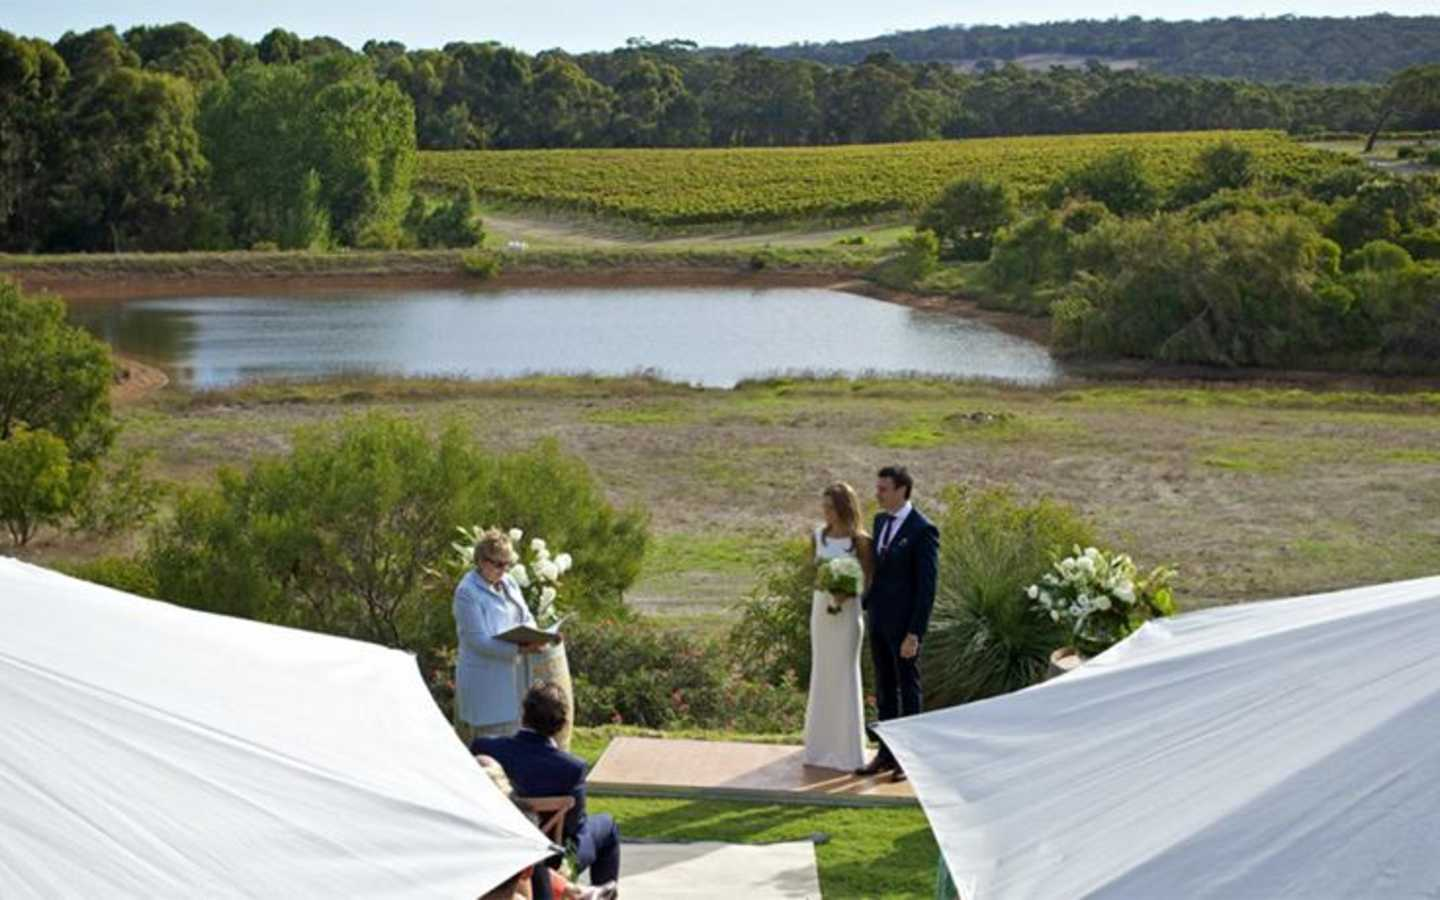 Ceremony overlooking the lake